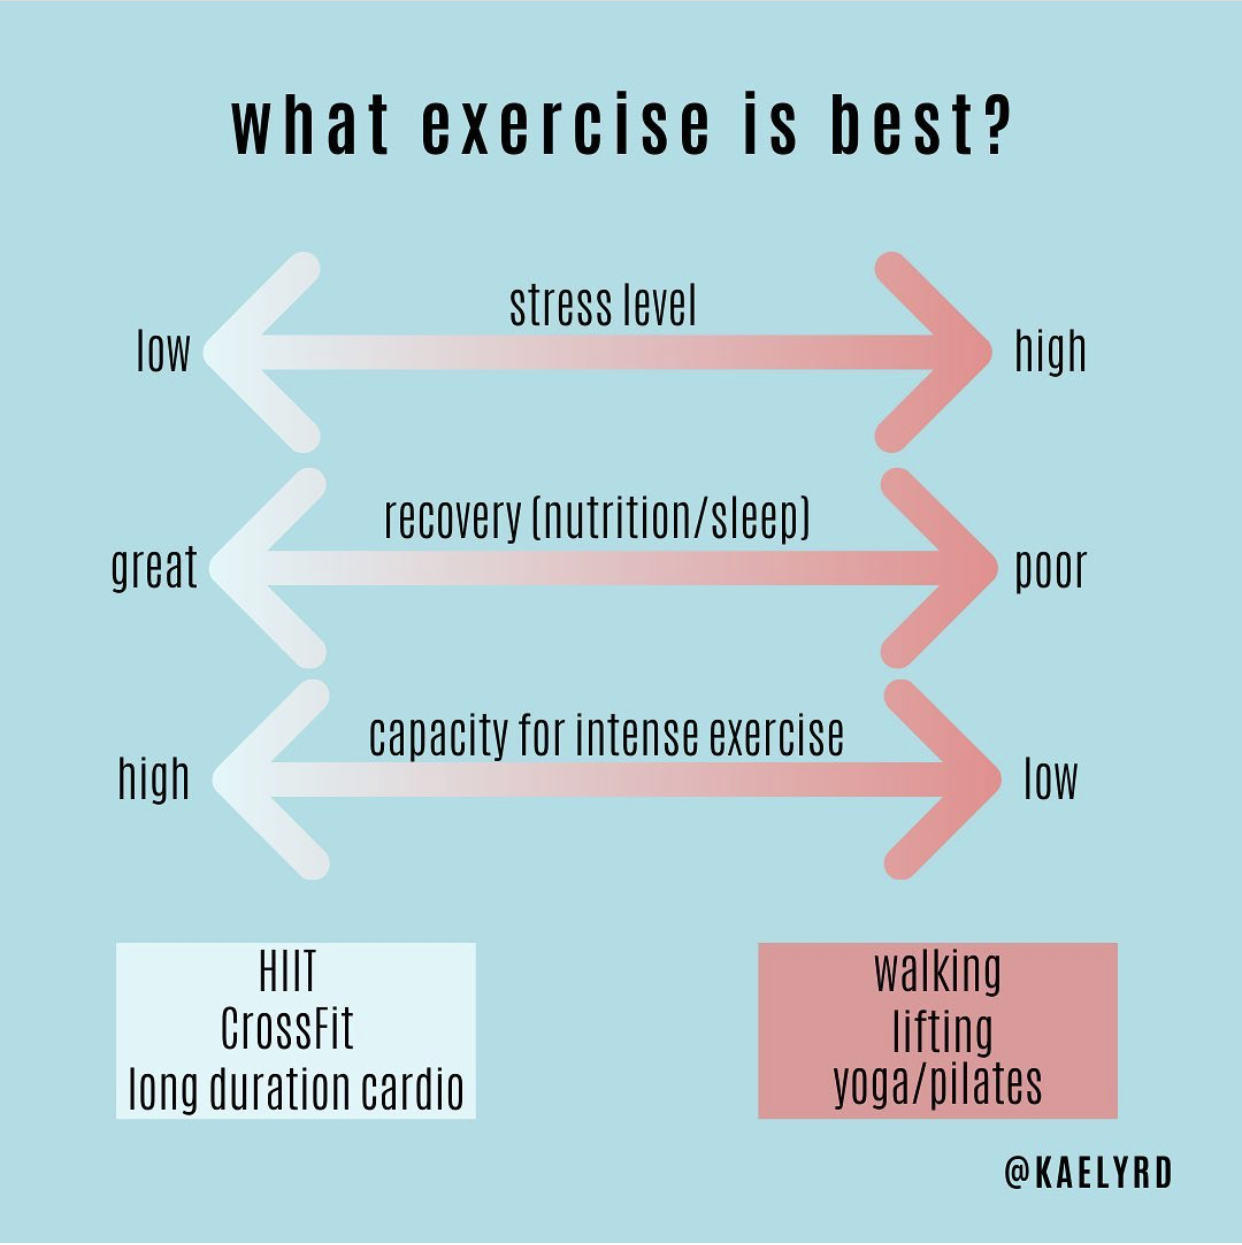 What excercise is best? Walking, Lifting, Yoga can be better than HIIT, CrossFit, or long duration cardio for stress, nutrition/sleep.